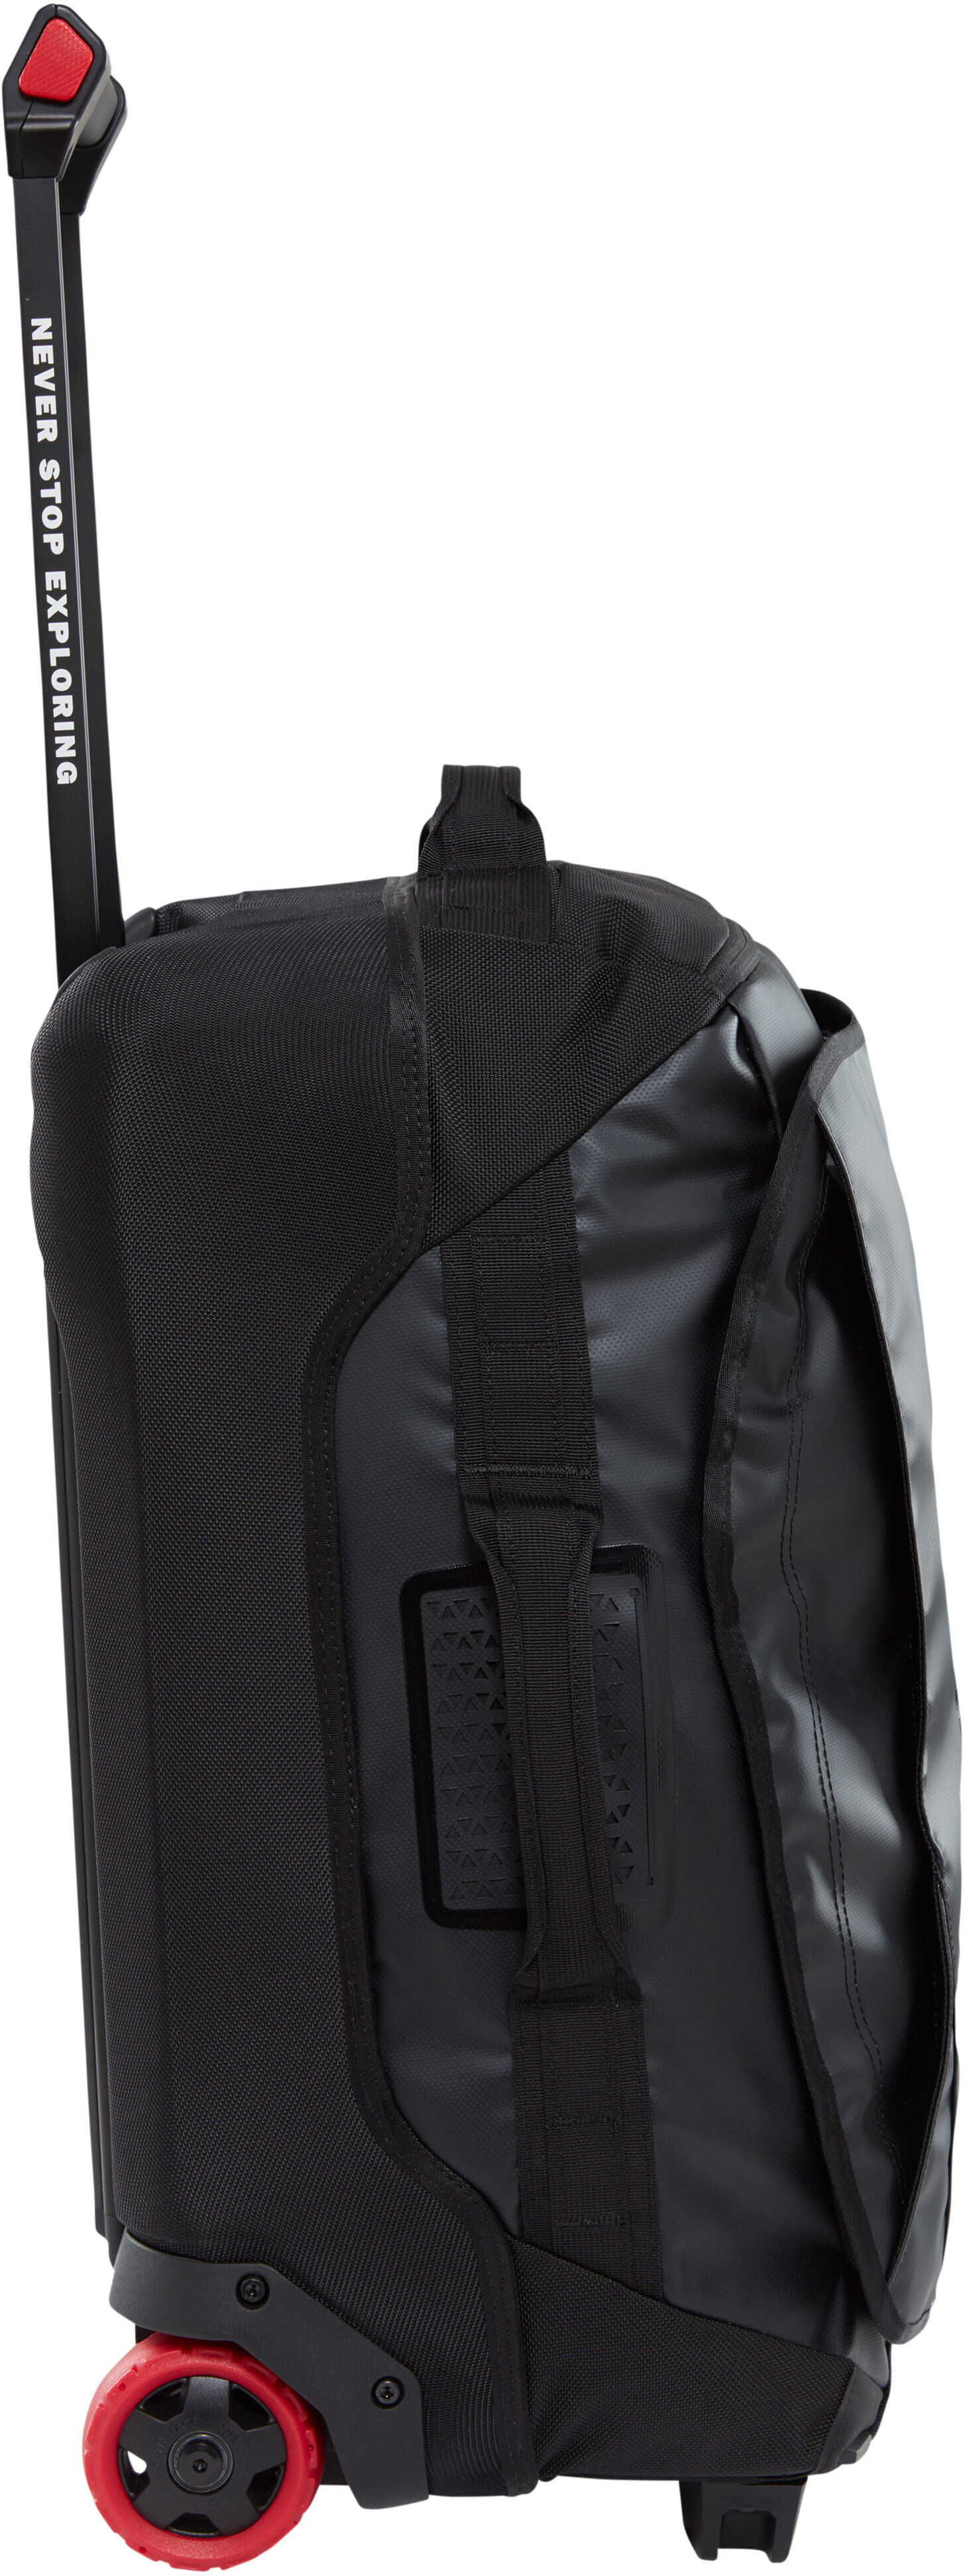 dd77162f7bbf The North Face Rolling Thunder Travel Bag